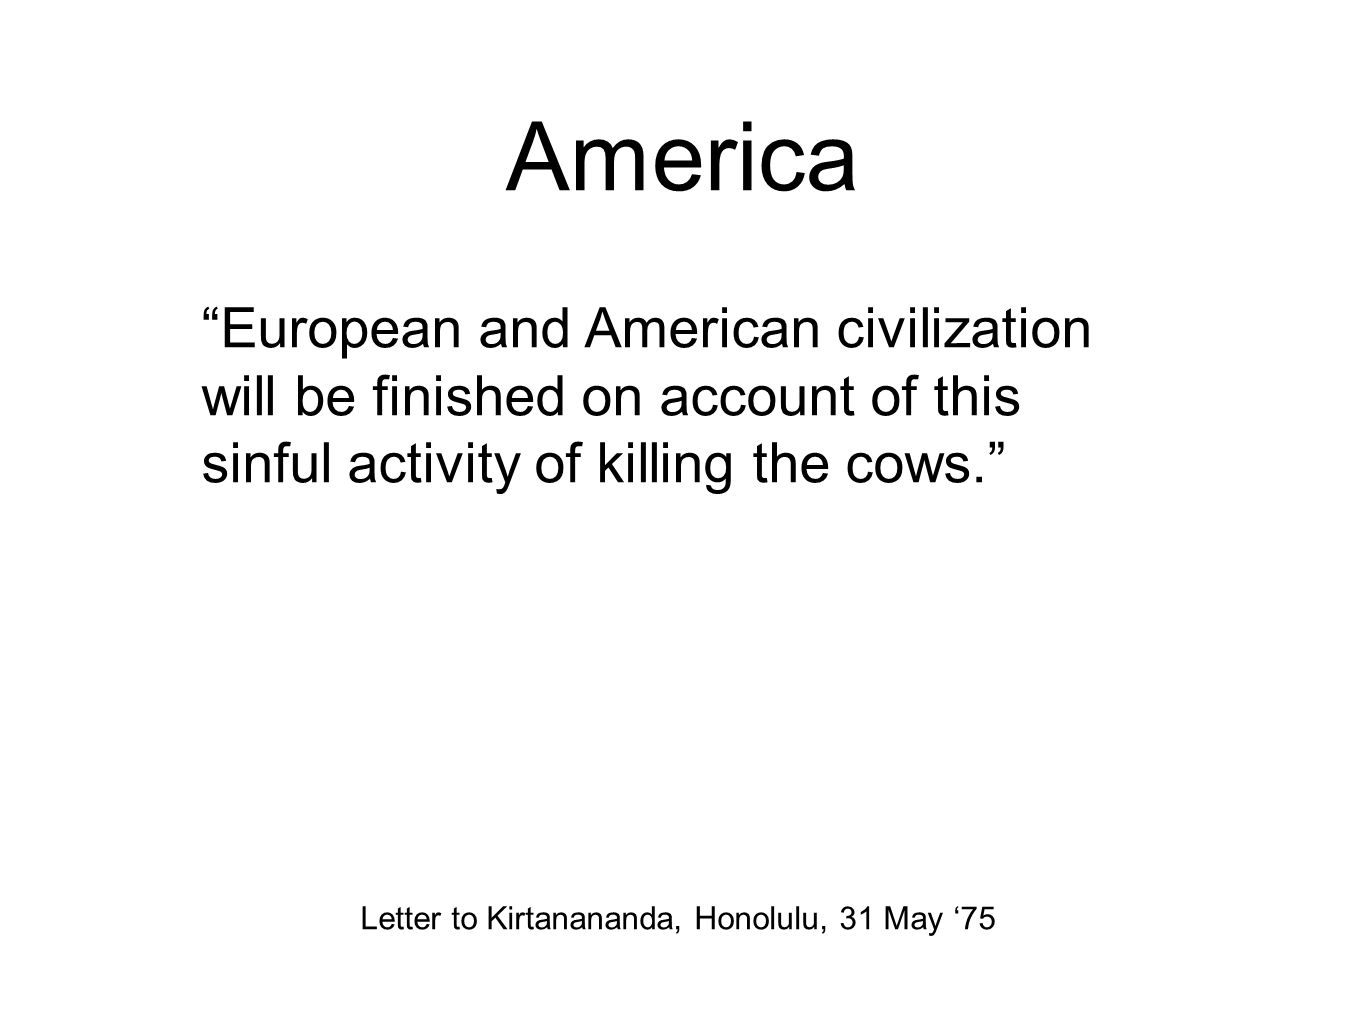 America European and American civilization will be finished on account of this sinful activity of killing the cows. Letter to Kirtanananda, Honolulu, 31 May '75